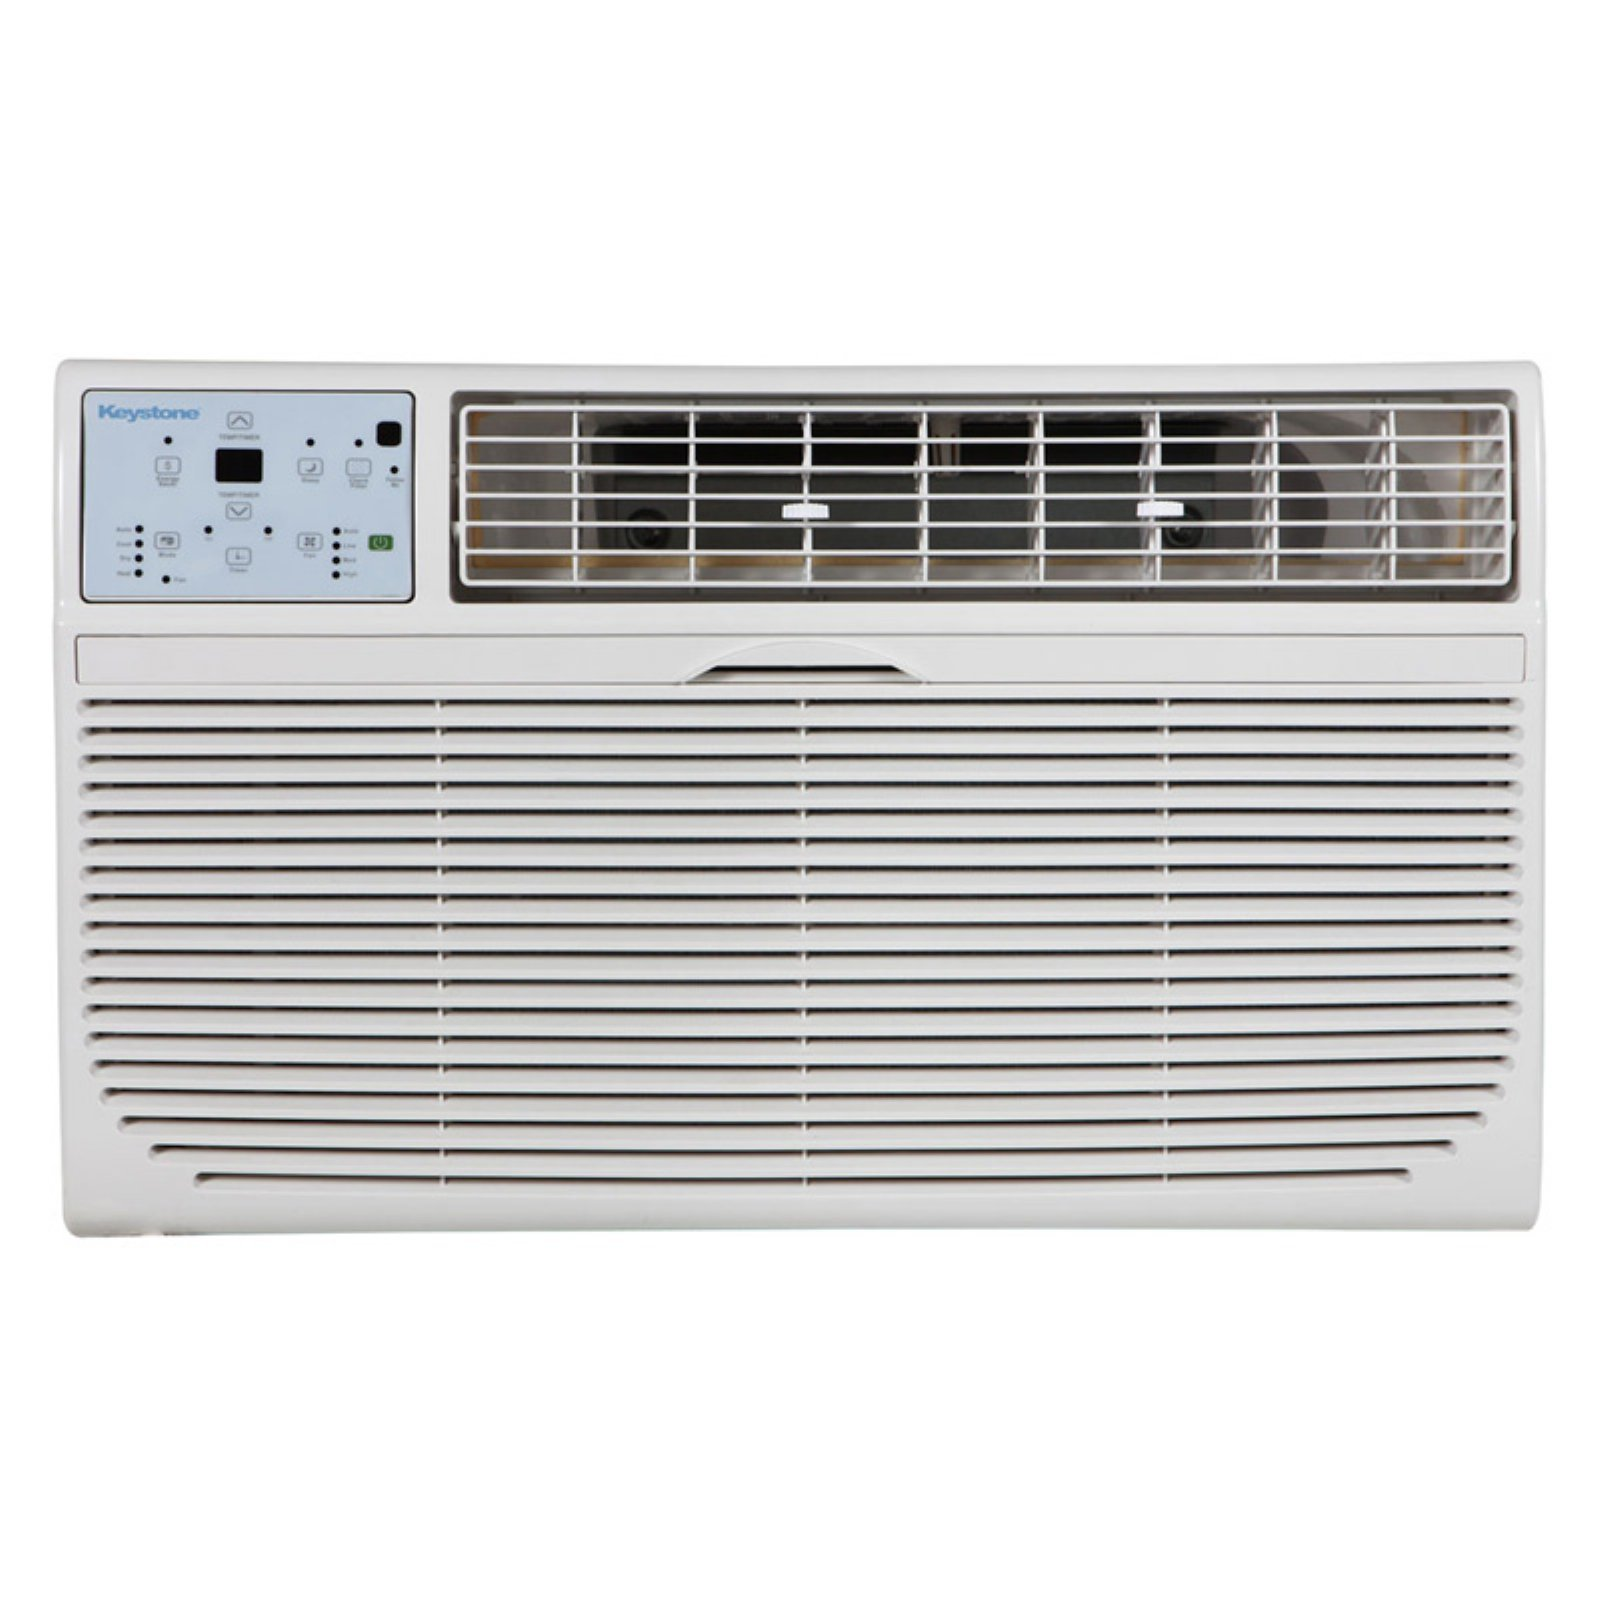 "Keystone KSTAT12-2C 12,000 BTU 230V Through-the-Wall Air Conditioner with ""Follow Me"" LCD Remote Control"